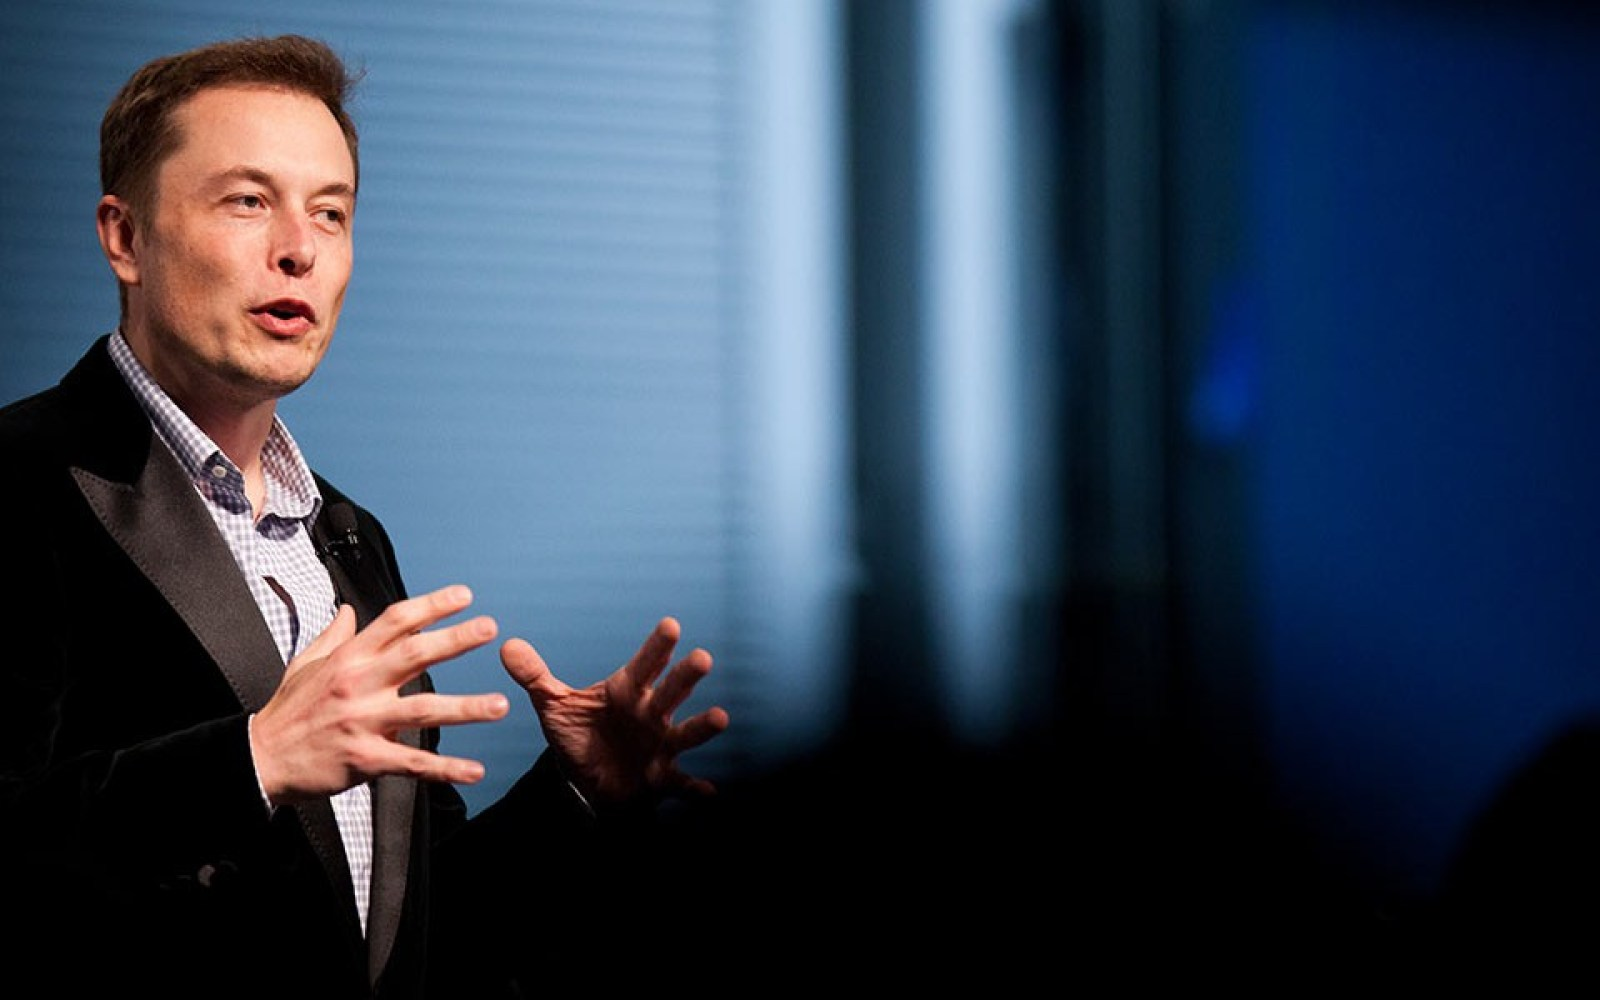 Tesla CEO Elon Musk to meet Donald Trump for tech-industry summit, says WSJ